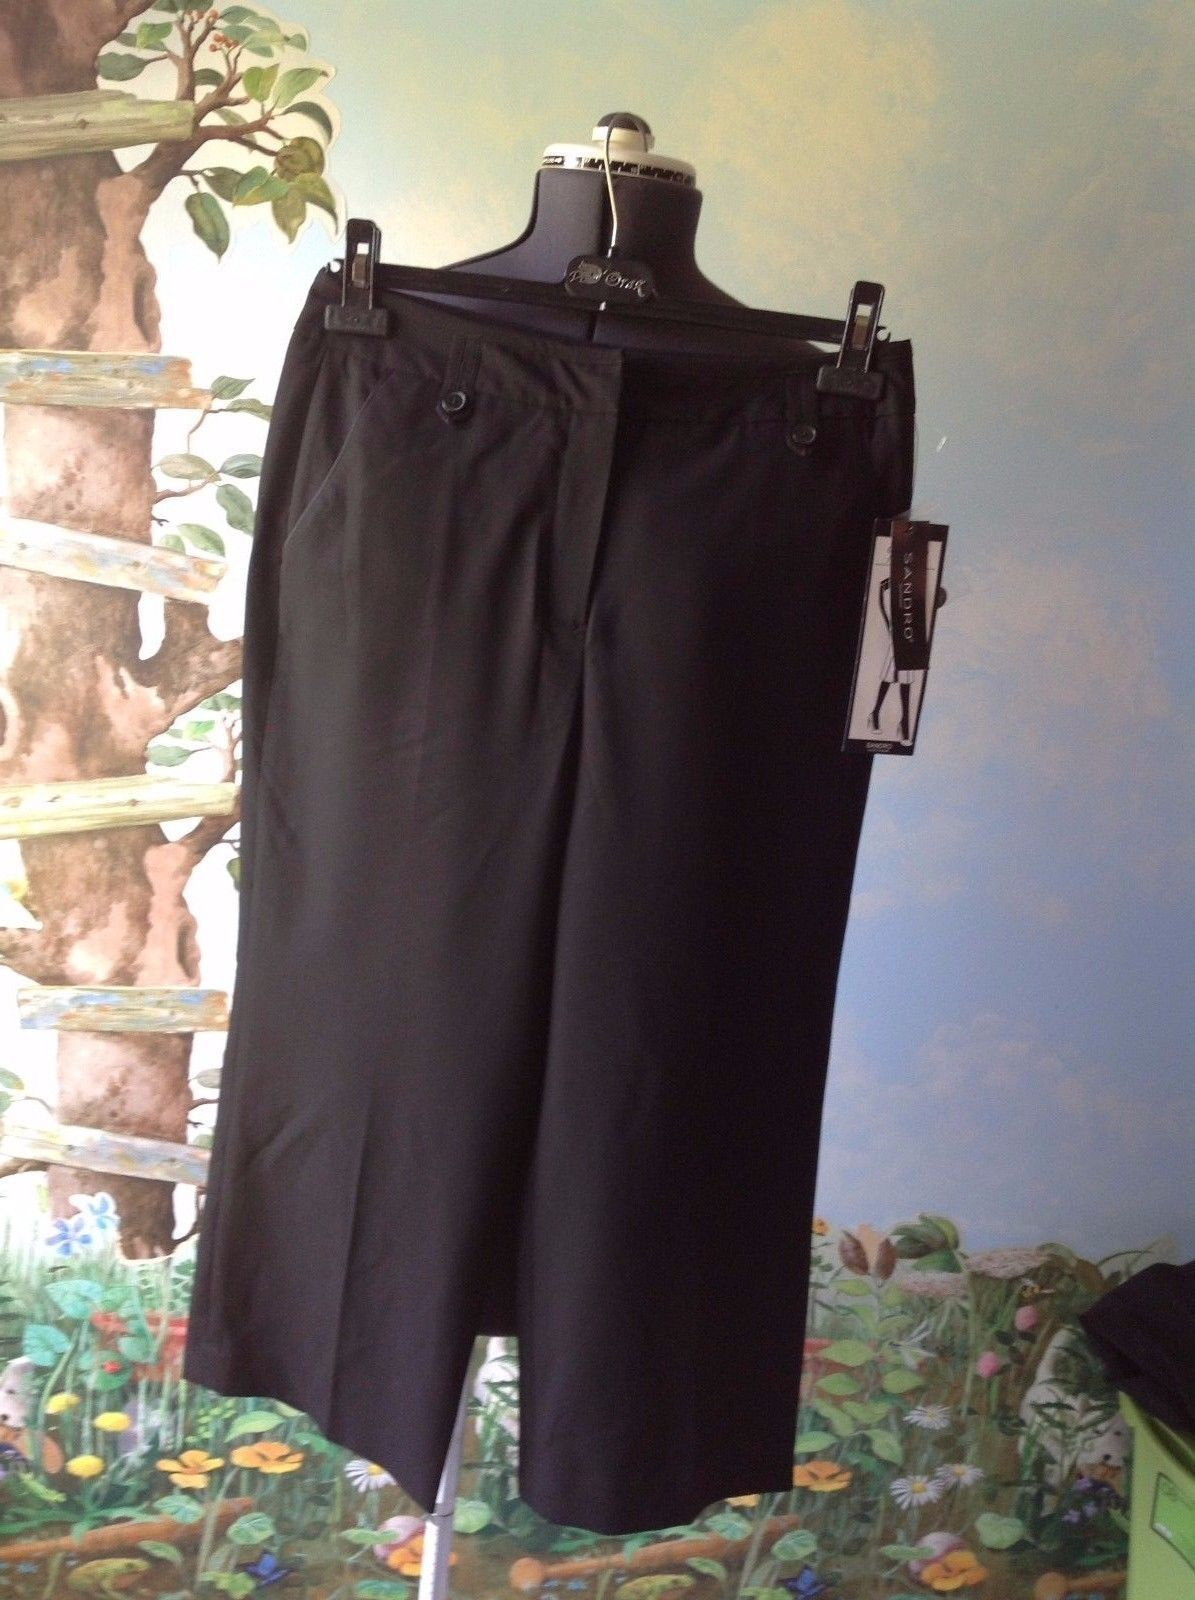 Primary image for Sandro Sportswear Women Black Control Top Crop Pants Size 6 New with Ticket